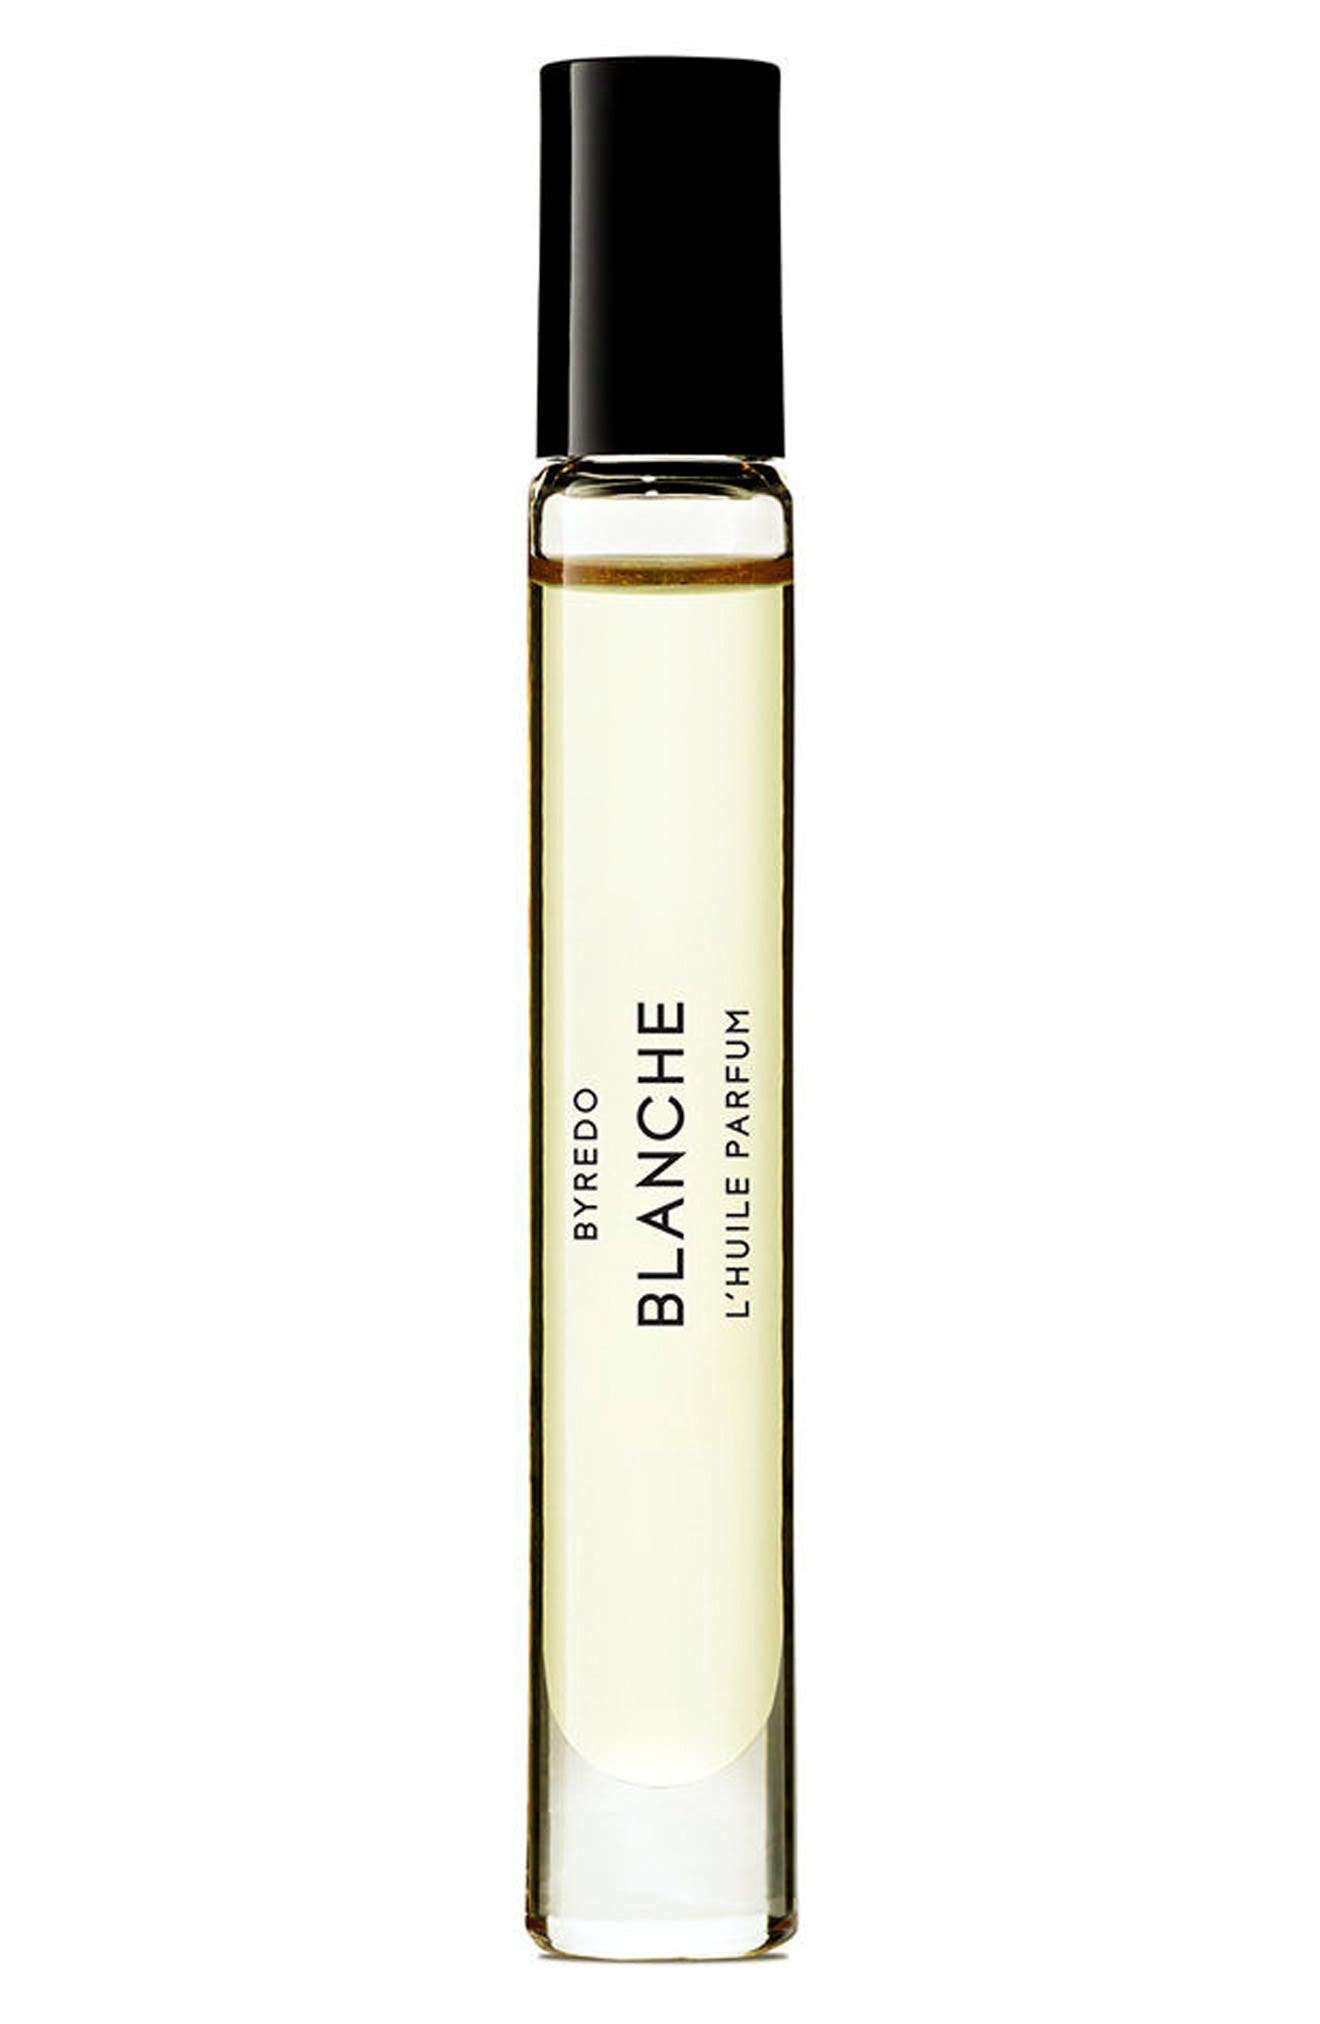 Blanche Eau de Parfum Rollerball,                             Main thumbnail 1, color,                             No Color